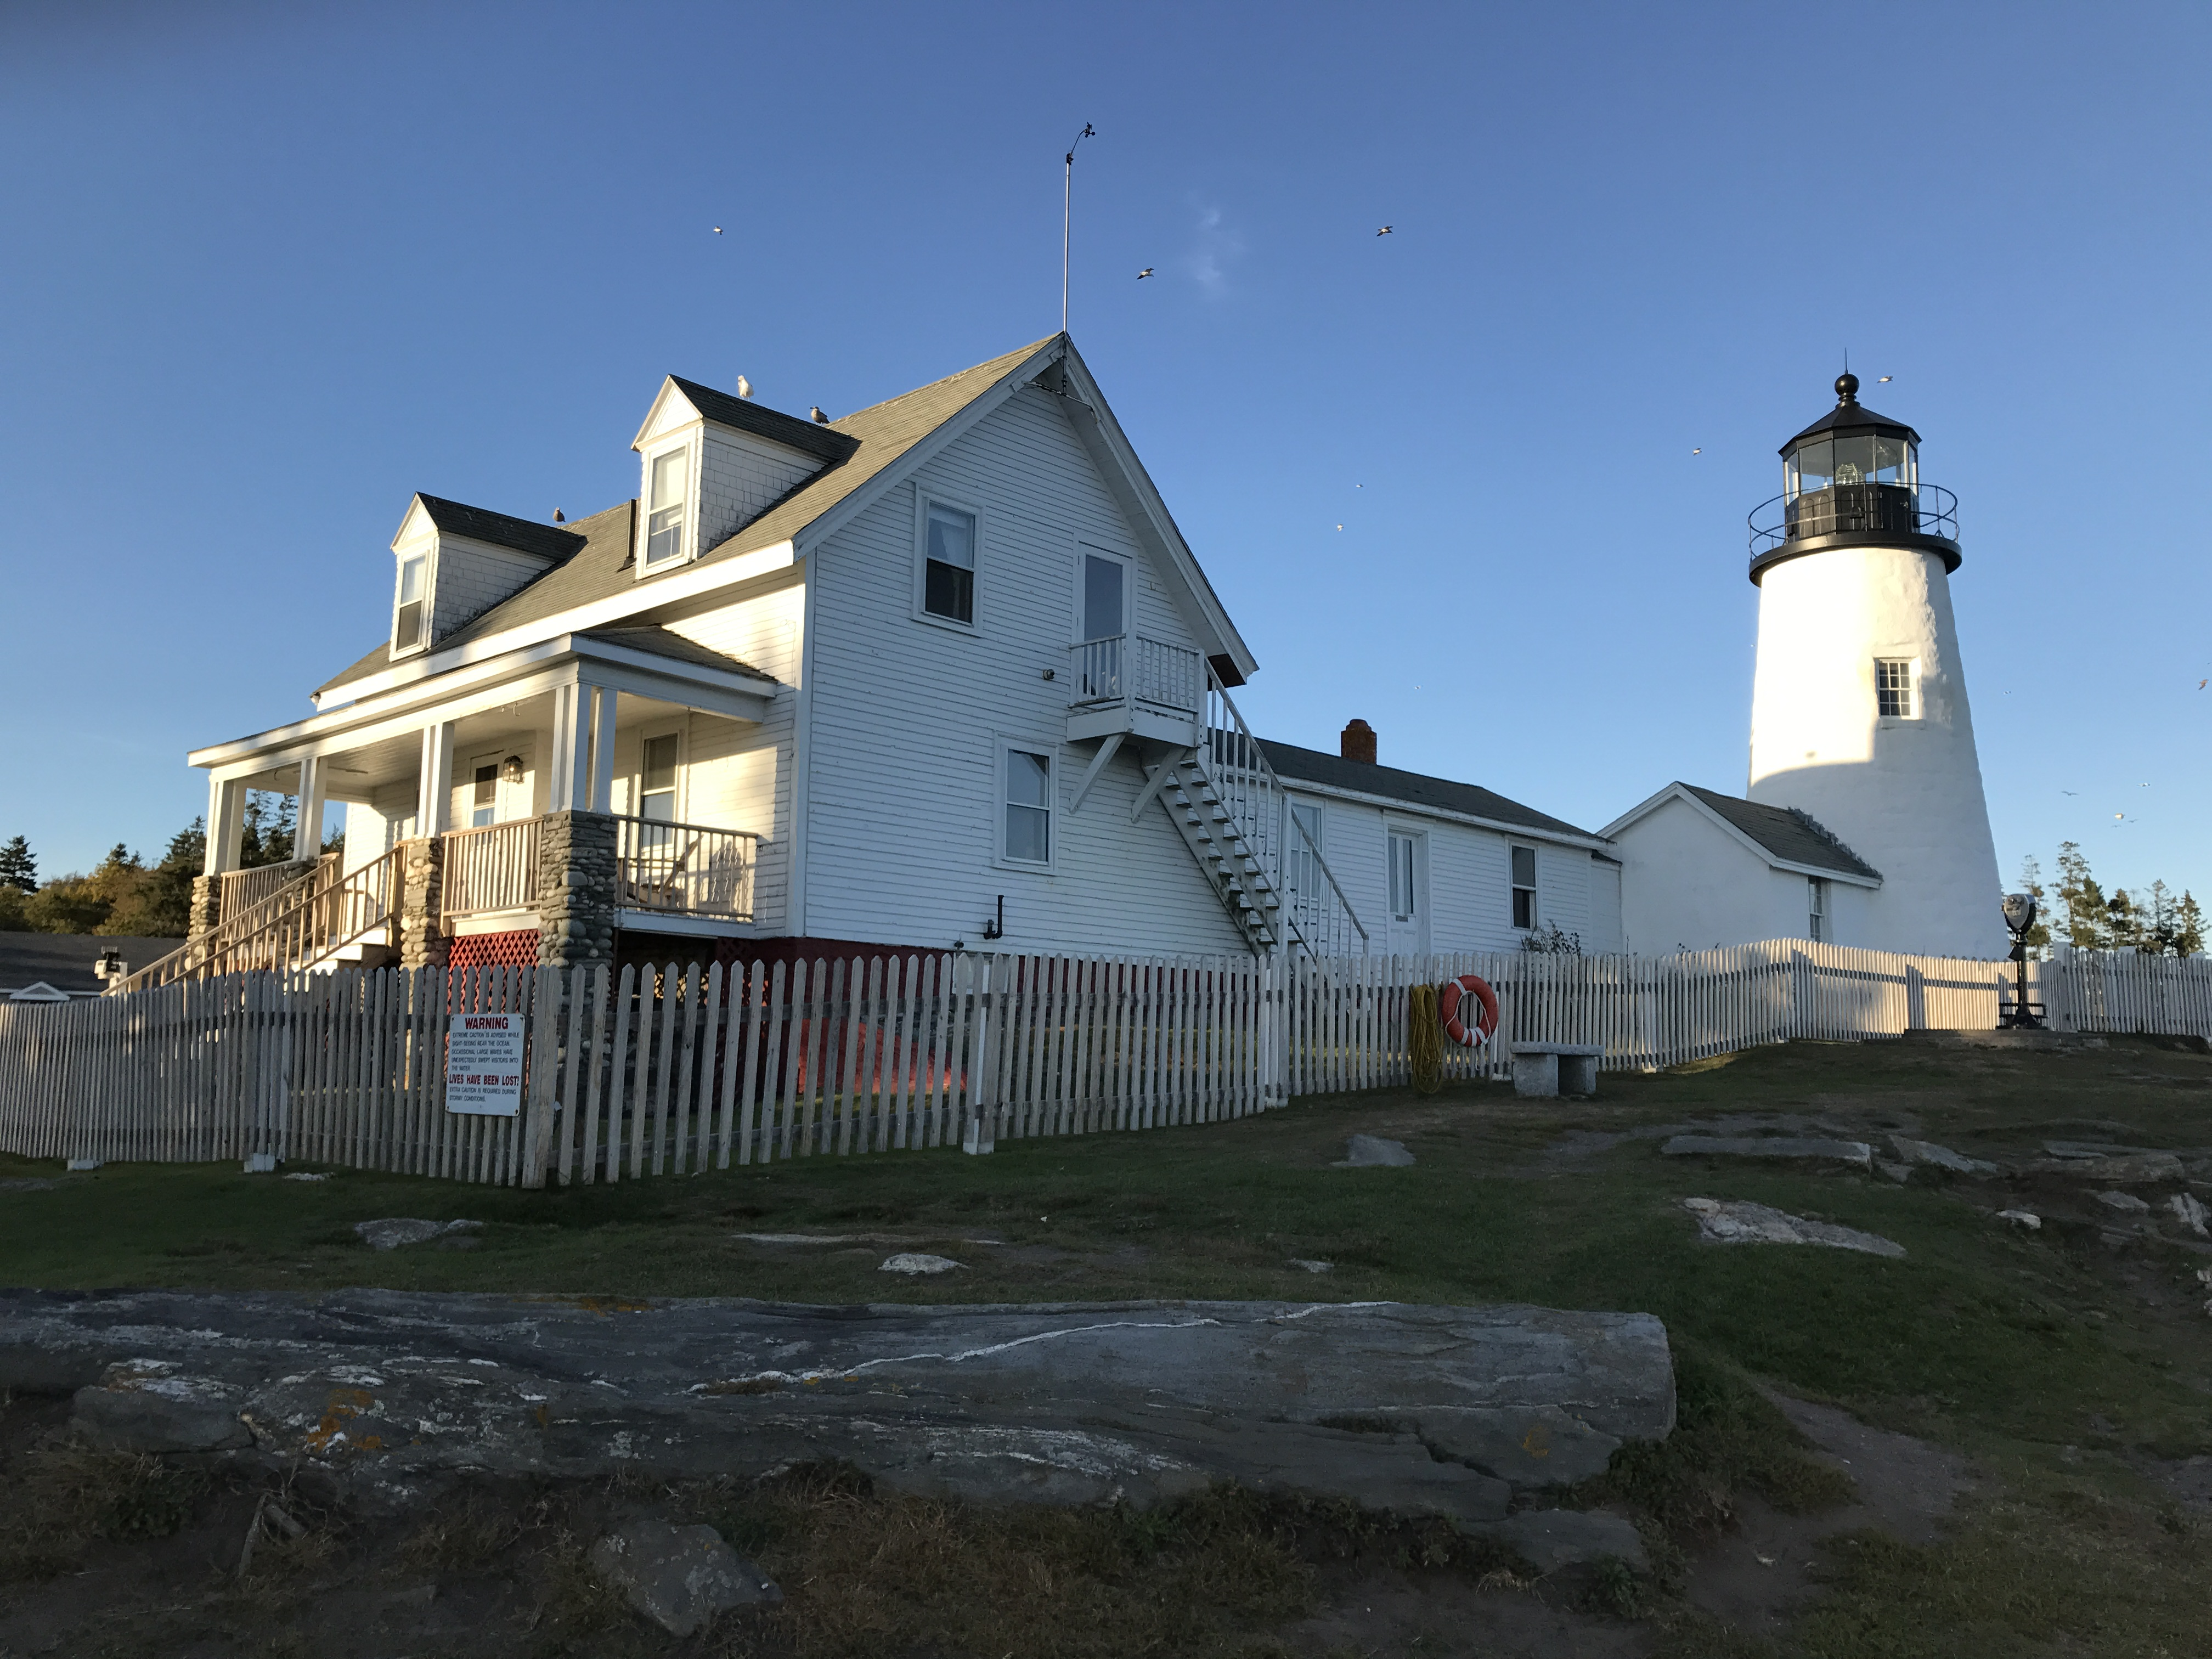 Glowing in the sun: Pemaquid Point Lighthouse